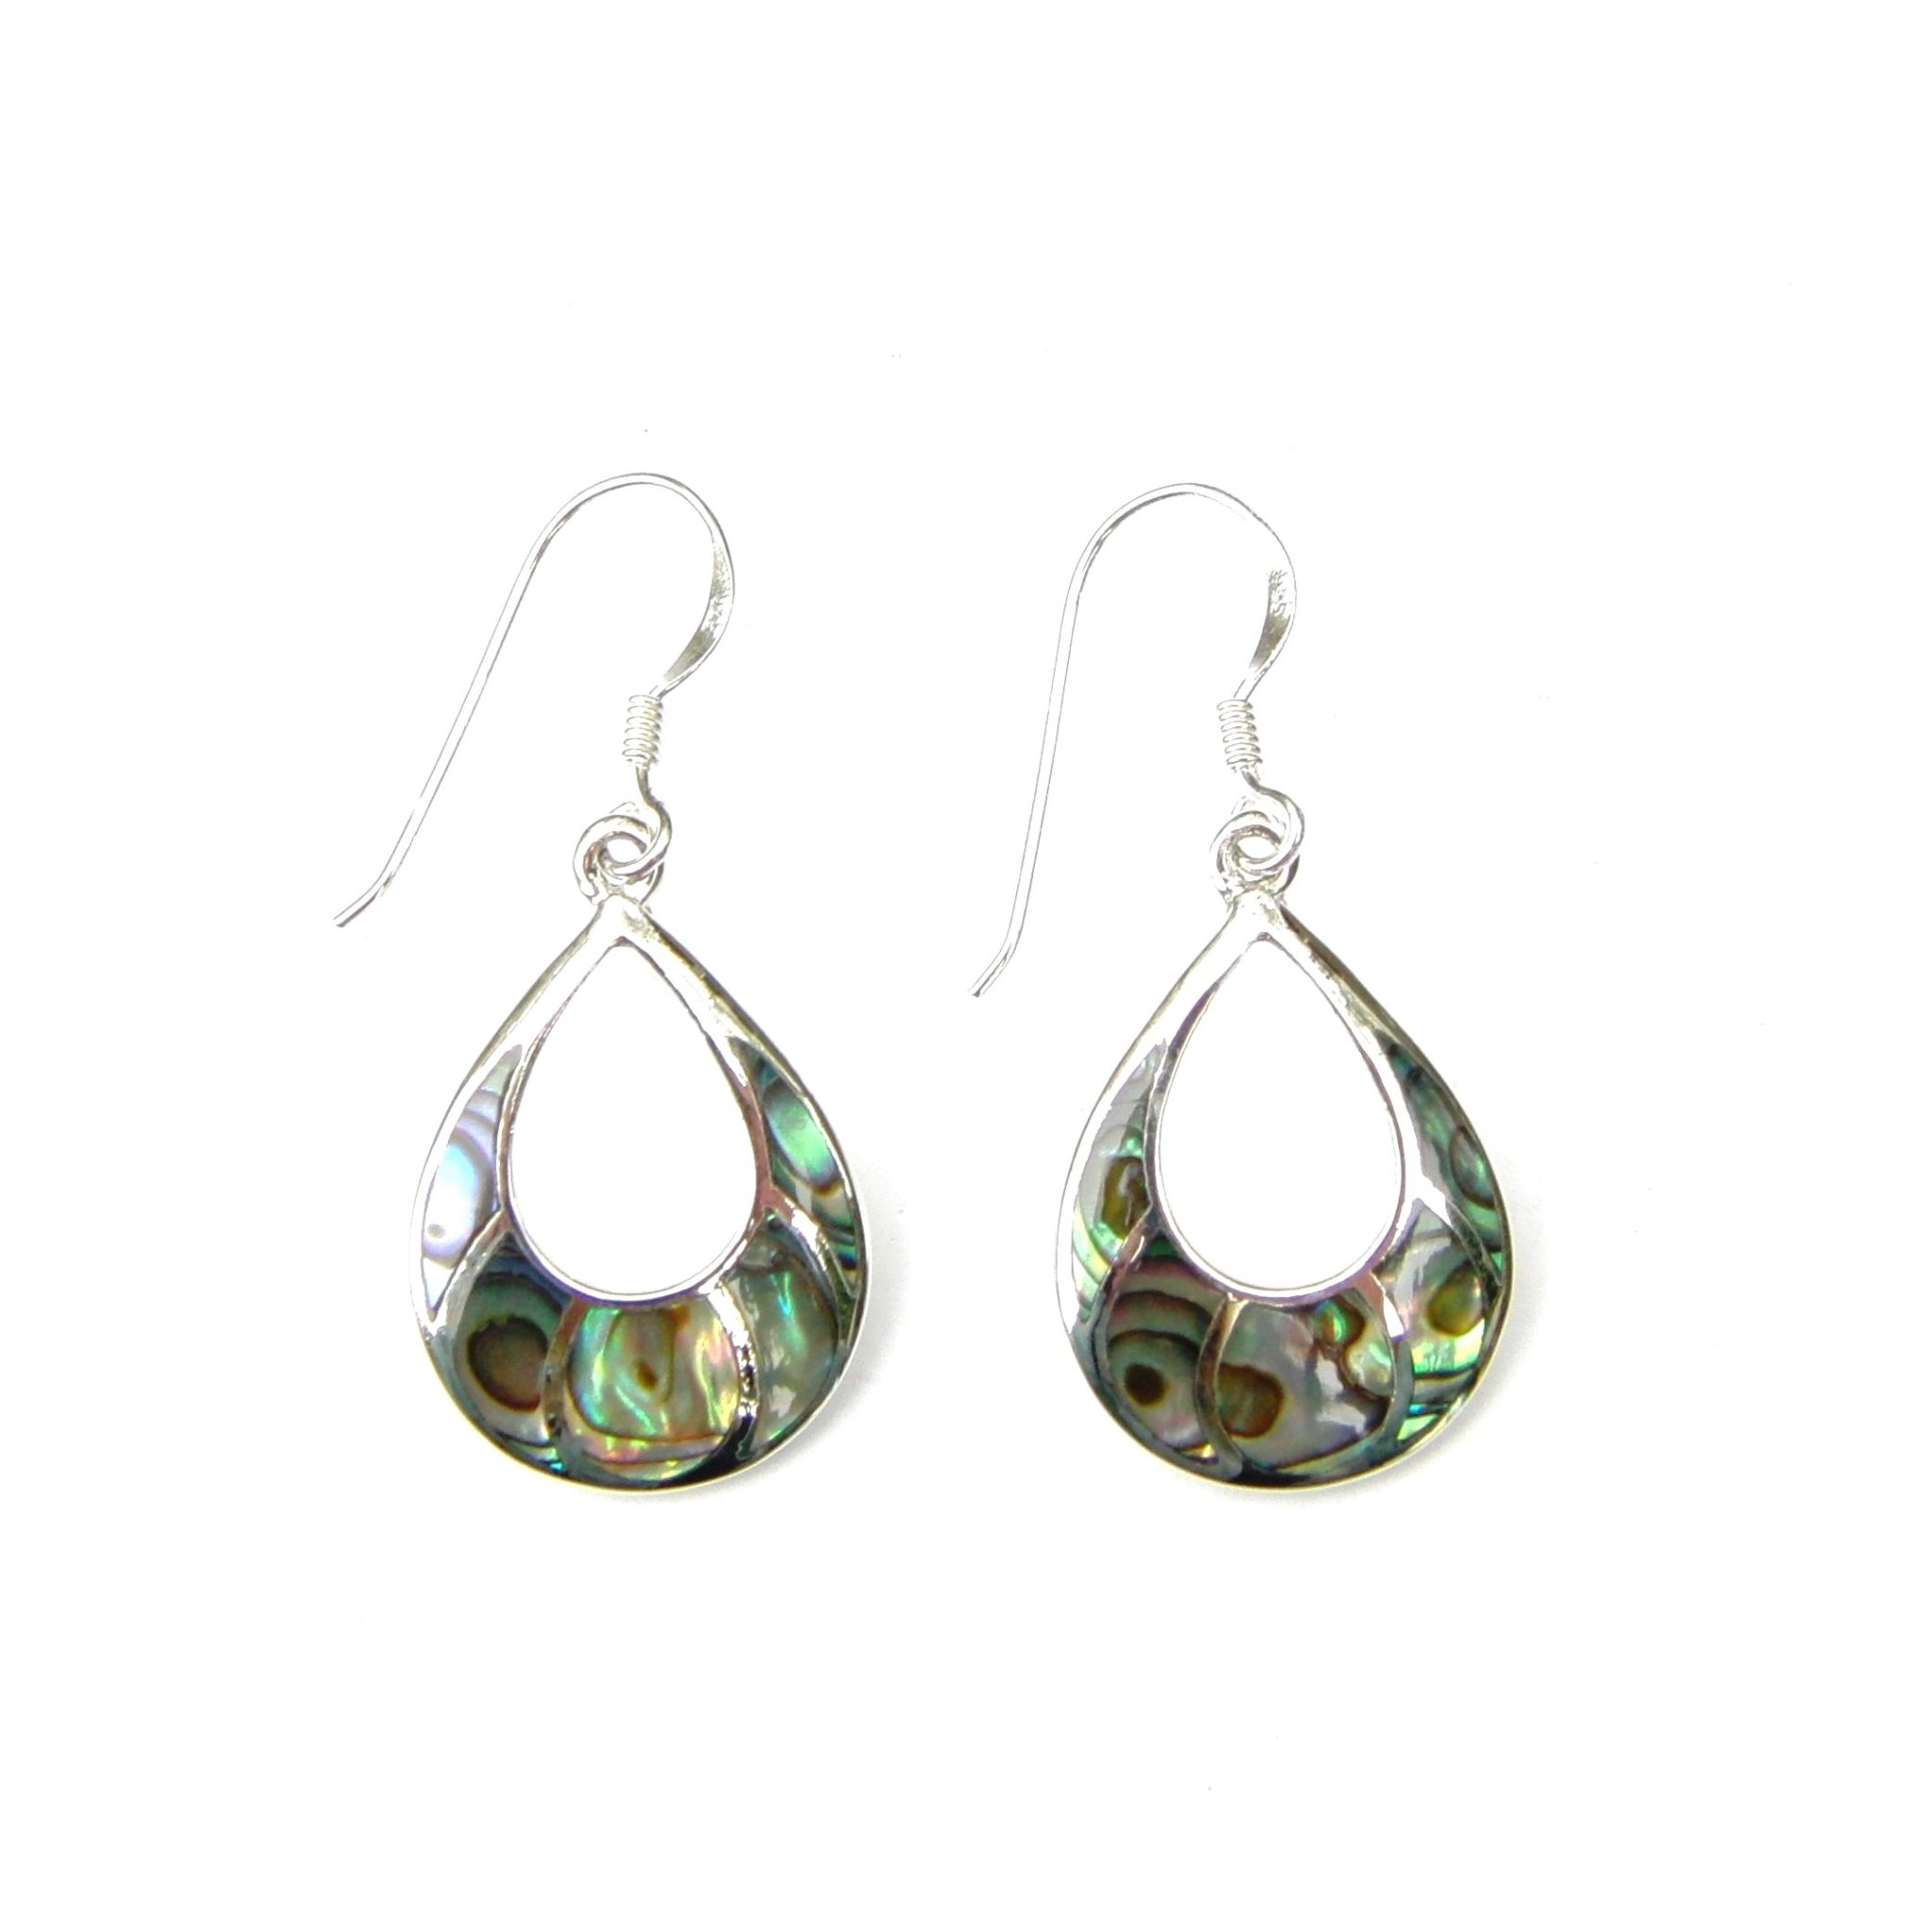 Beautiful Abalone Shell Silver Earrings